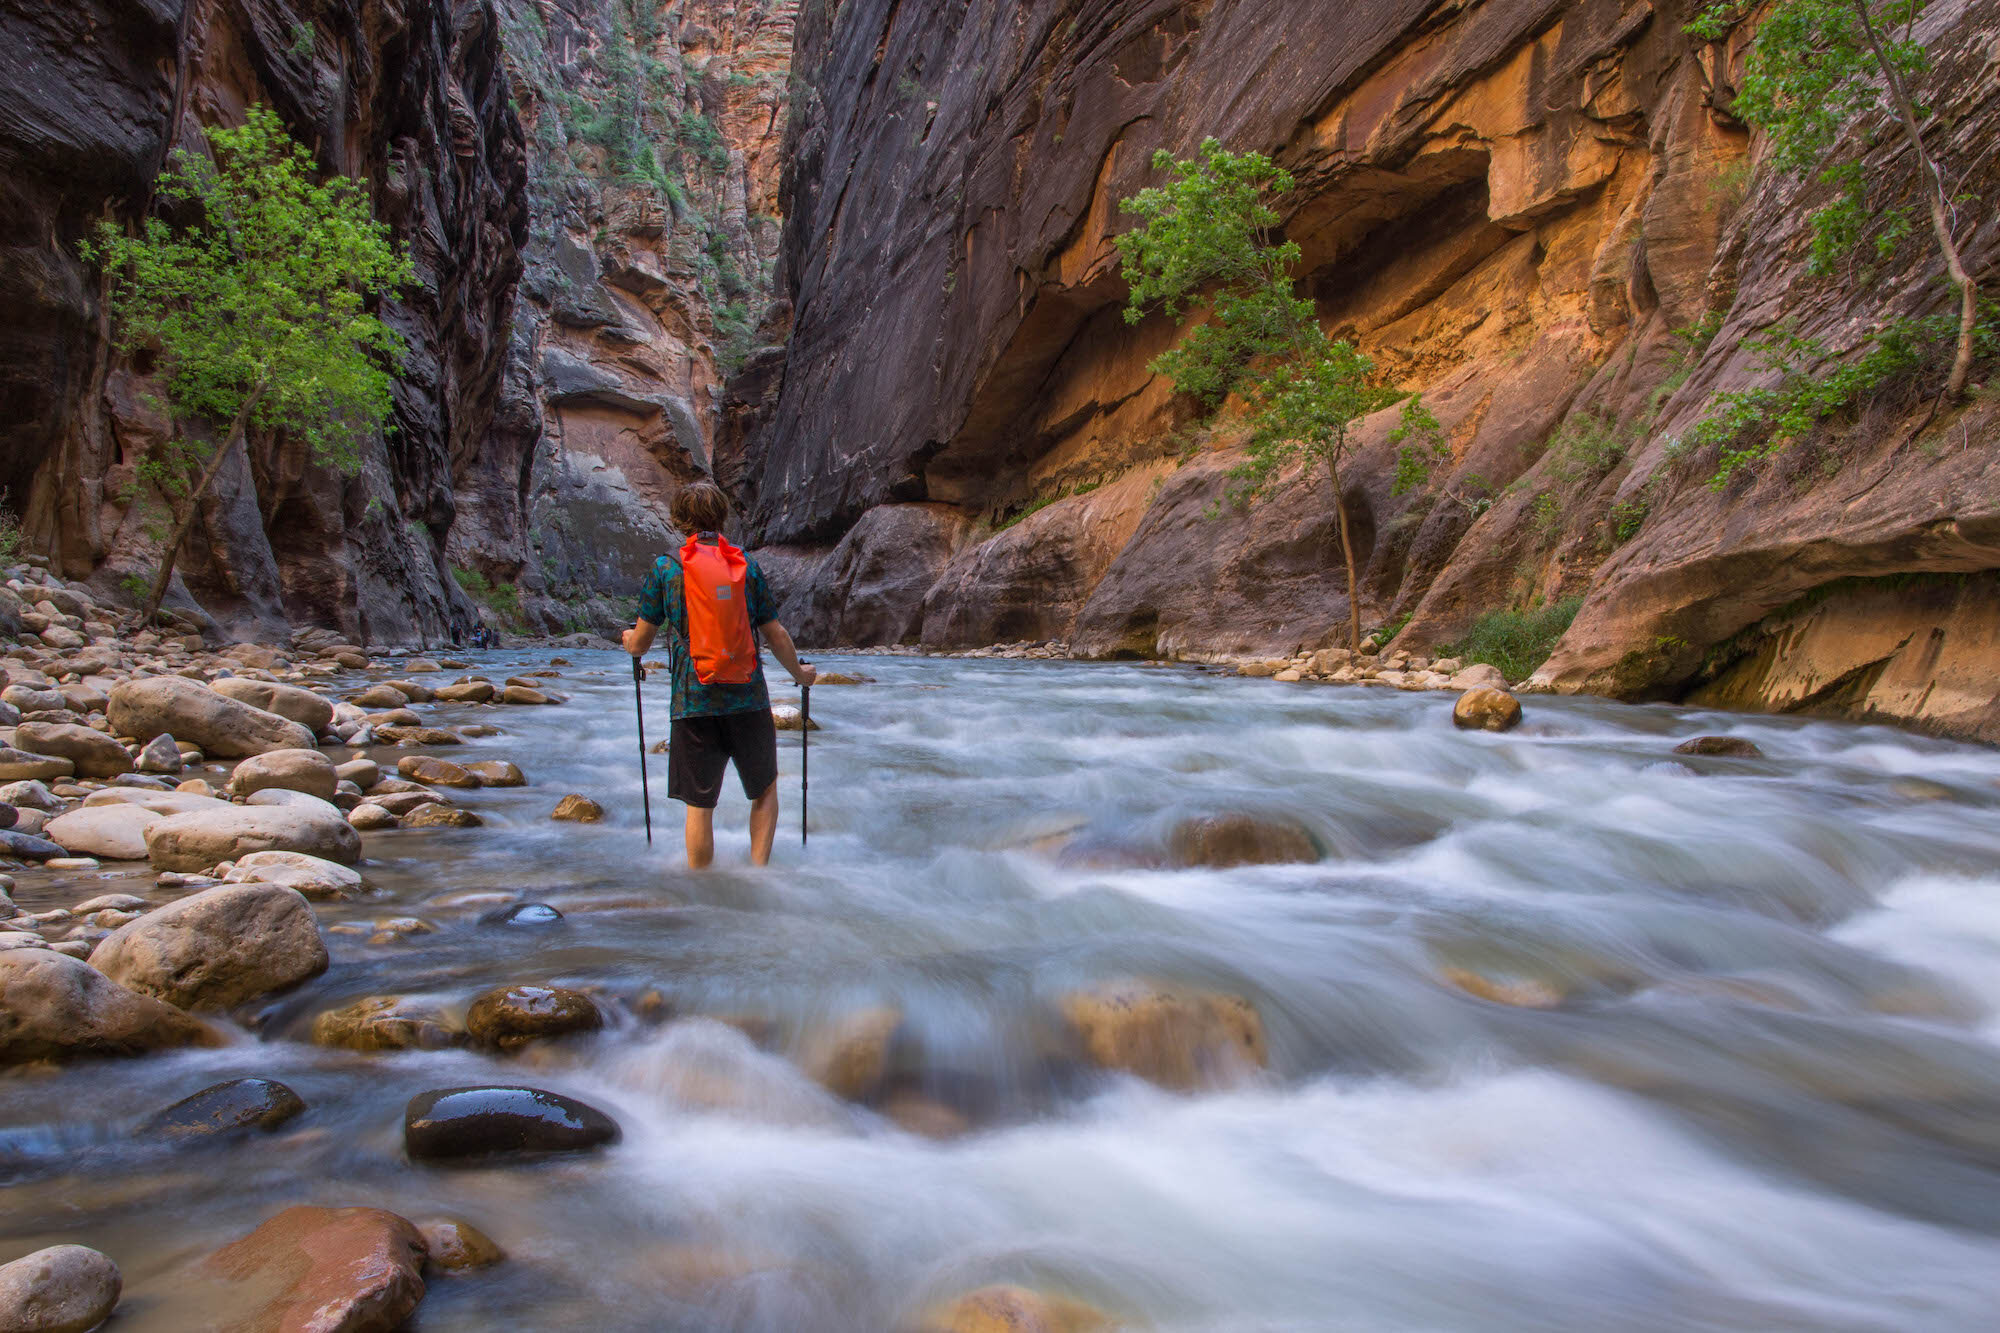 Hiking into The Narrows in Zion National Park